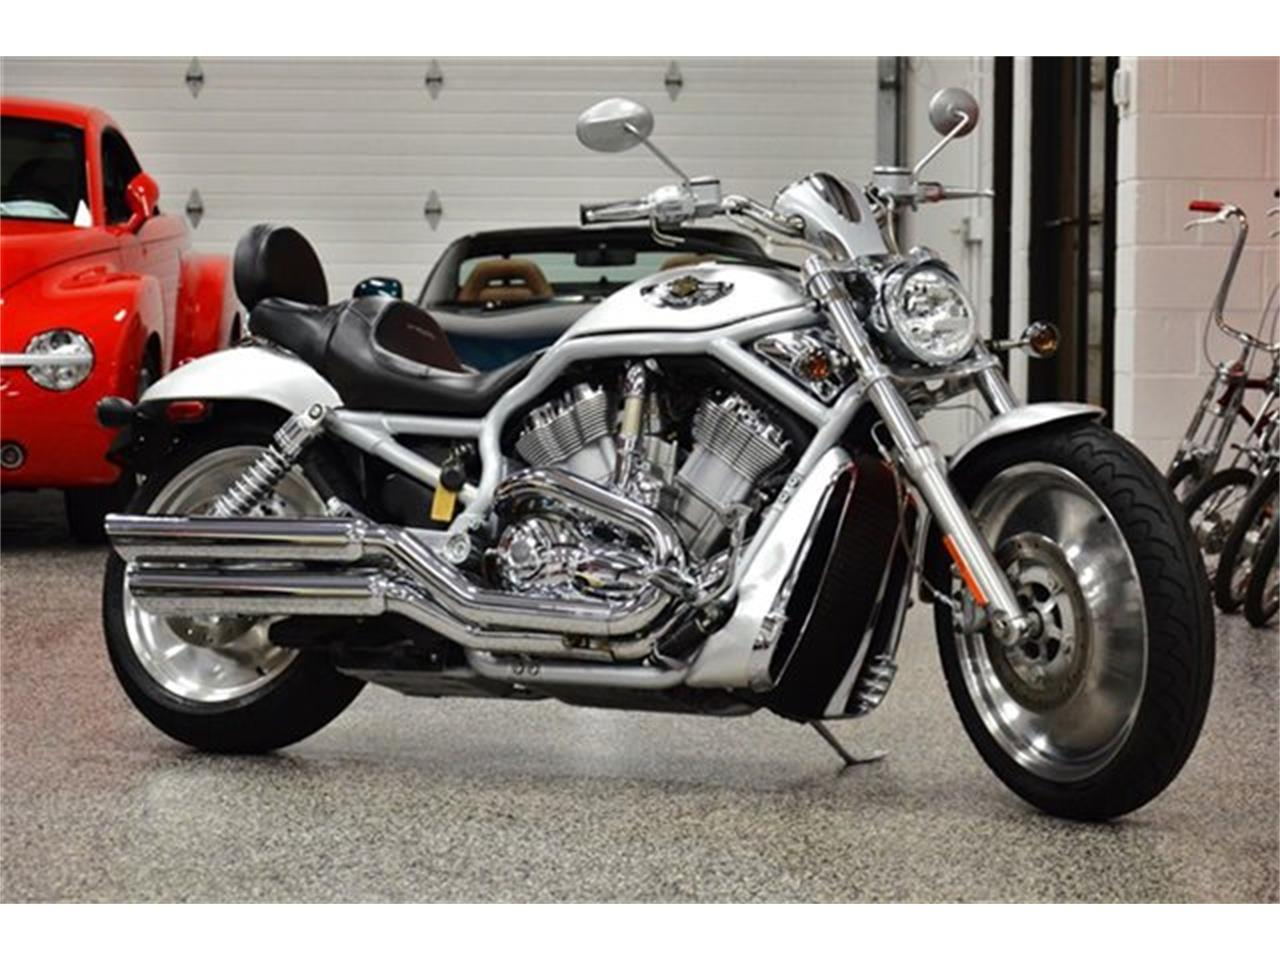 2003 Harley-Davidson VRSC for sale in Plainfield, IL – photo 33